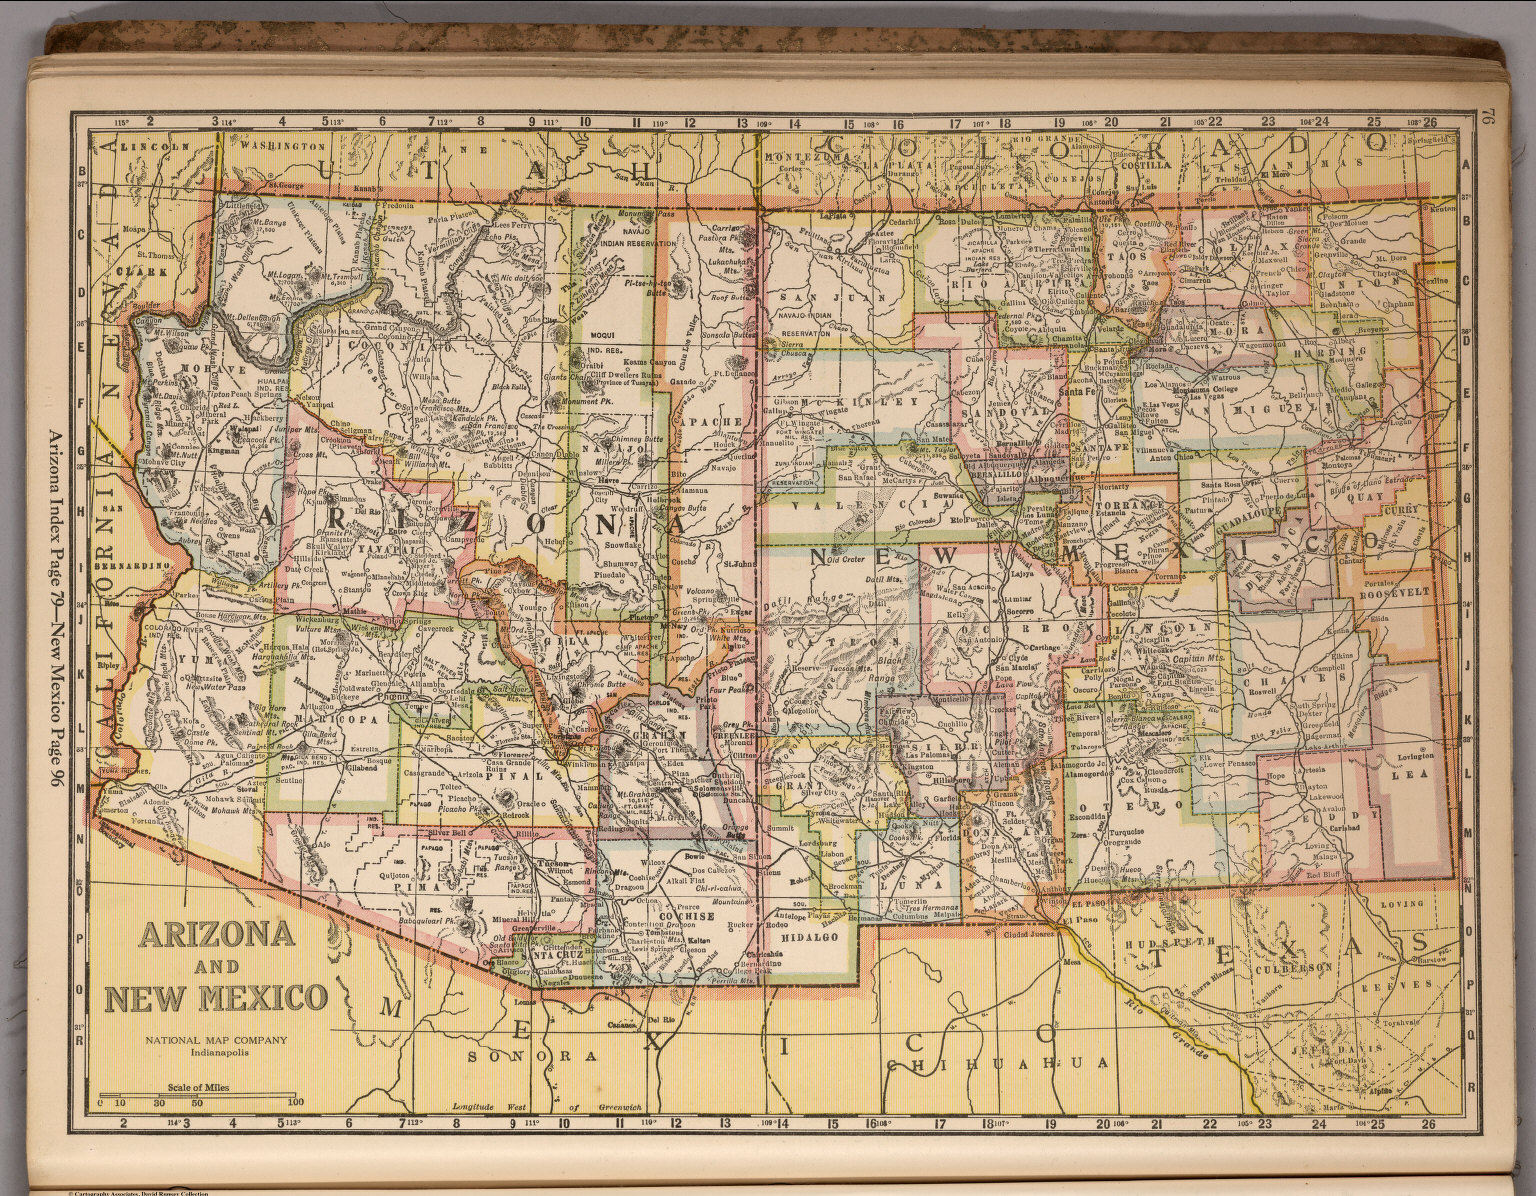 Arizona And New Mexico David Rumsey Historical Map Collection - Map of arizona and new mexico